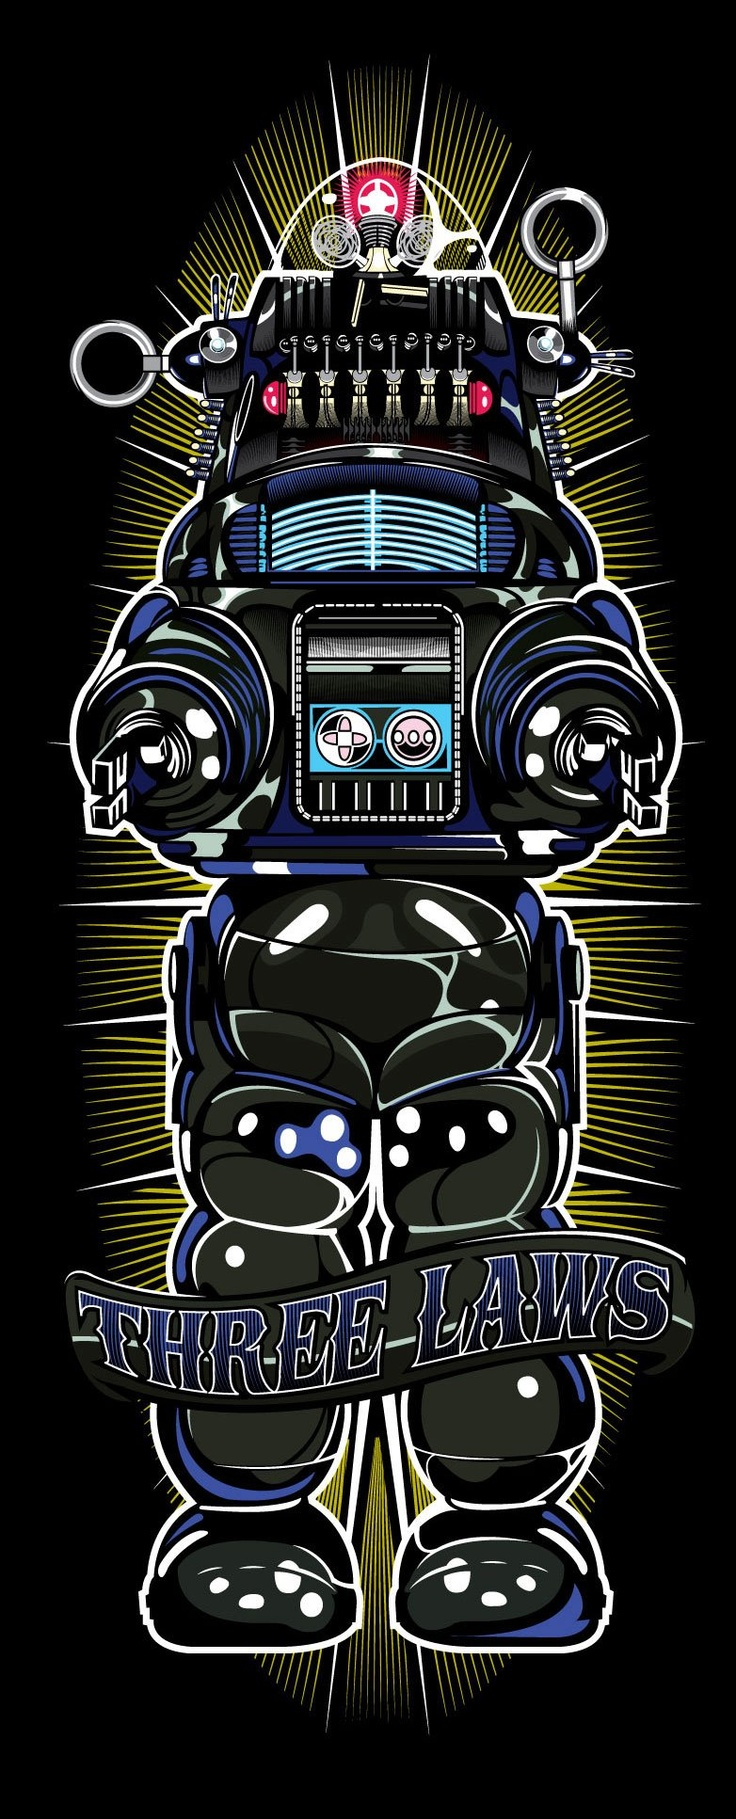 Robby the Robot - Three Laws by Samuel Ho. 1) Do no injury 2) Obey humans unless it conflicts with First Law 3) Protect yourself unless it conflicts with First and Second Laws